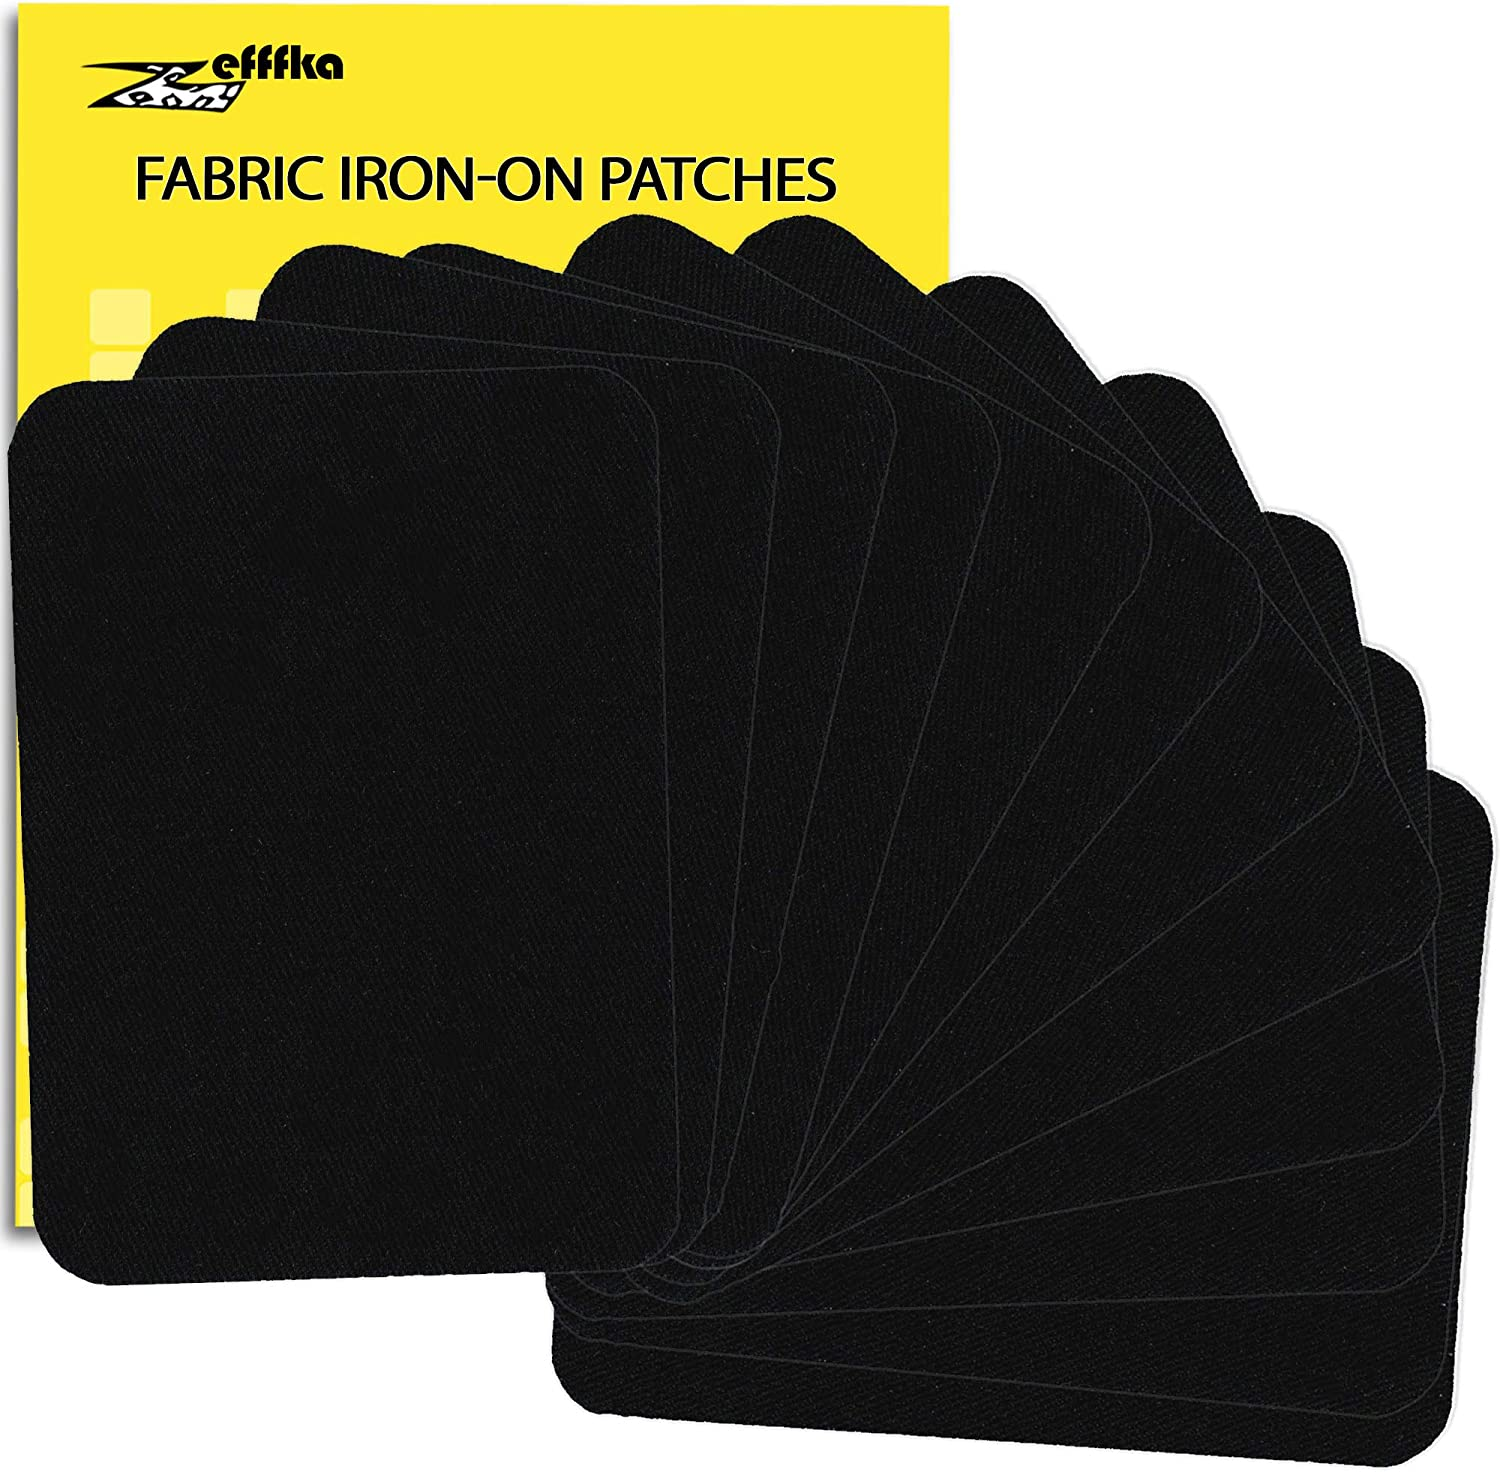 "ZEFFFKA Premium Quality Fabric Iron On Patches Deep Black 12 Pieces 100% Cotton Repair Kit 3"" by 4-1/4"""